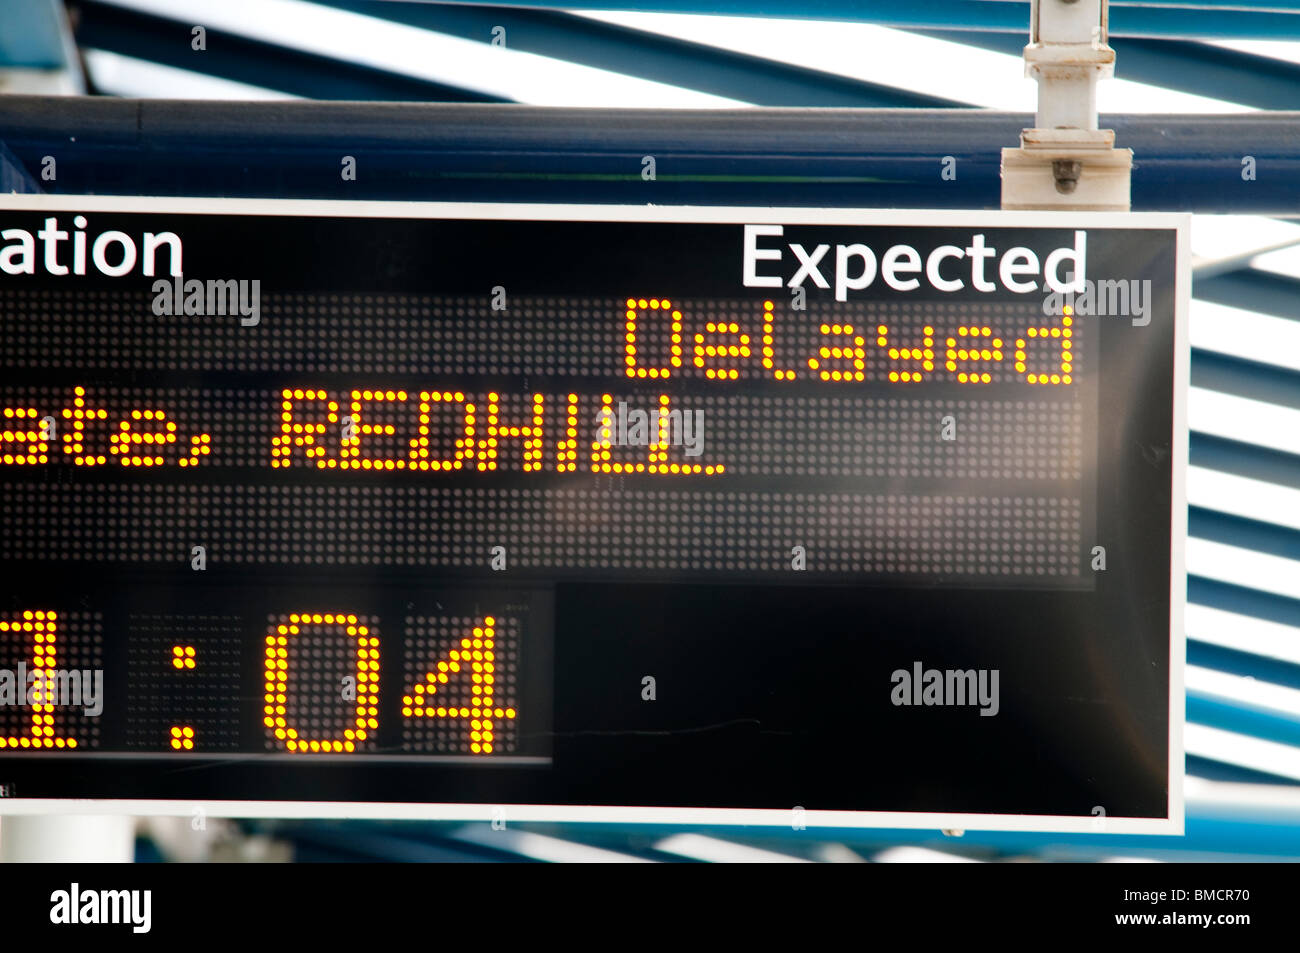 Delayed sign at a train station - Stock Image